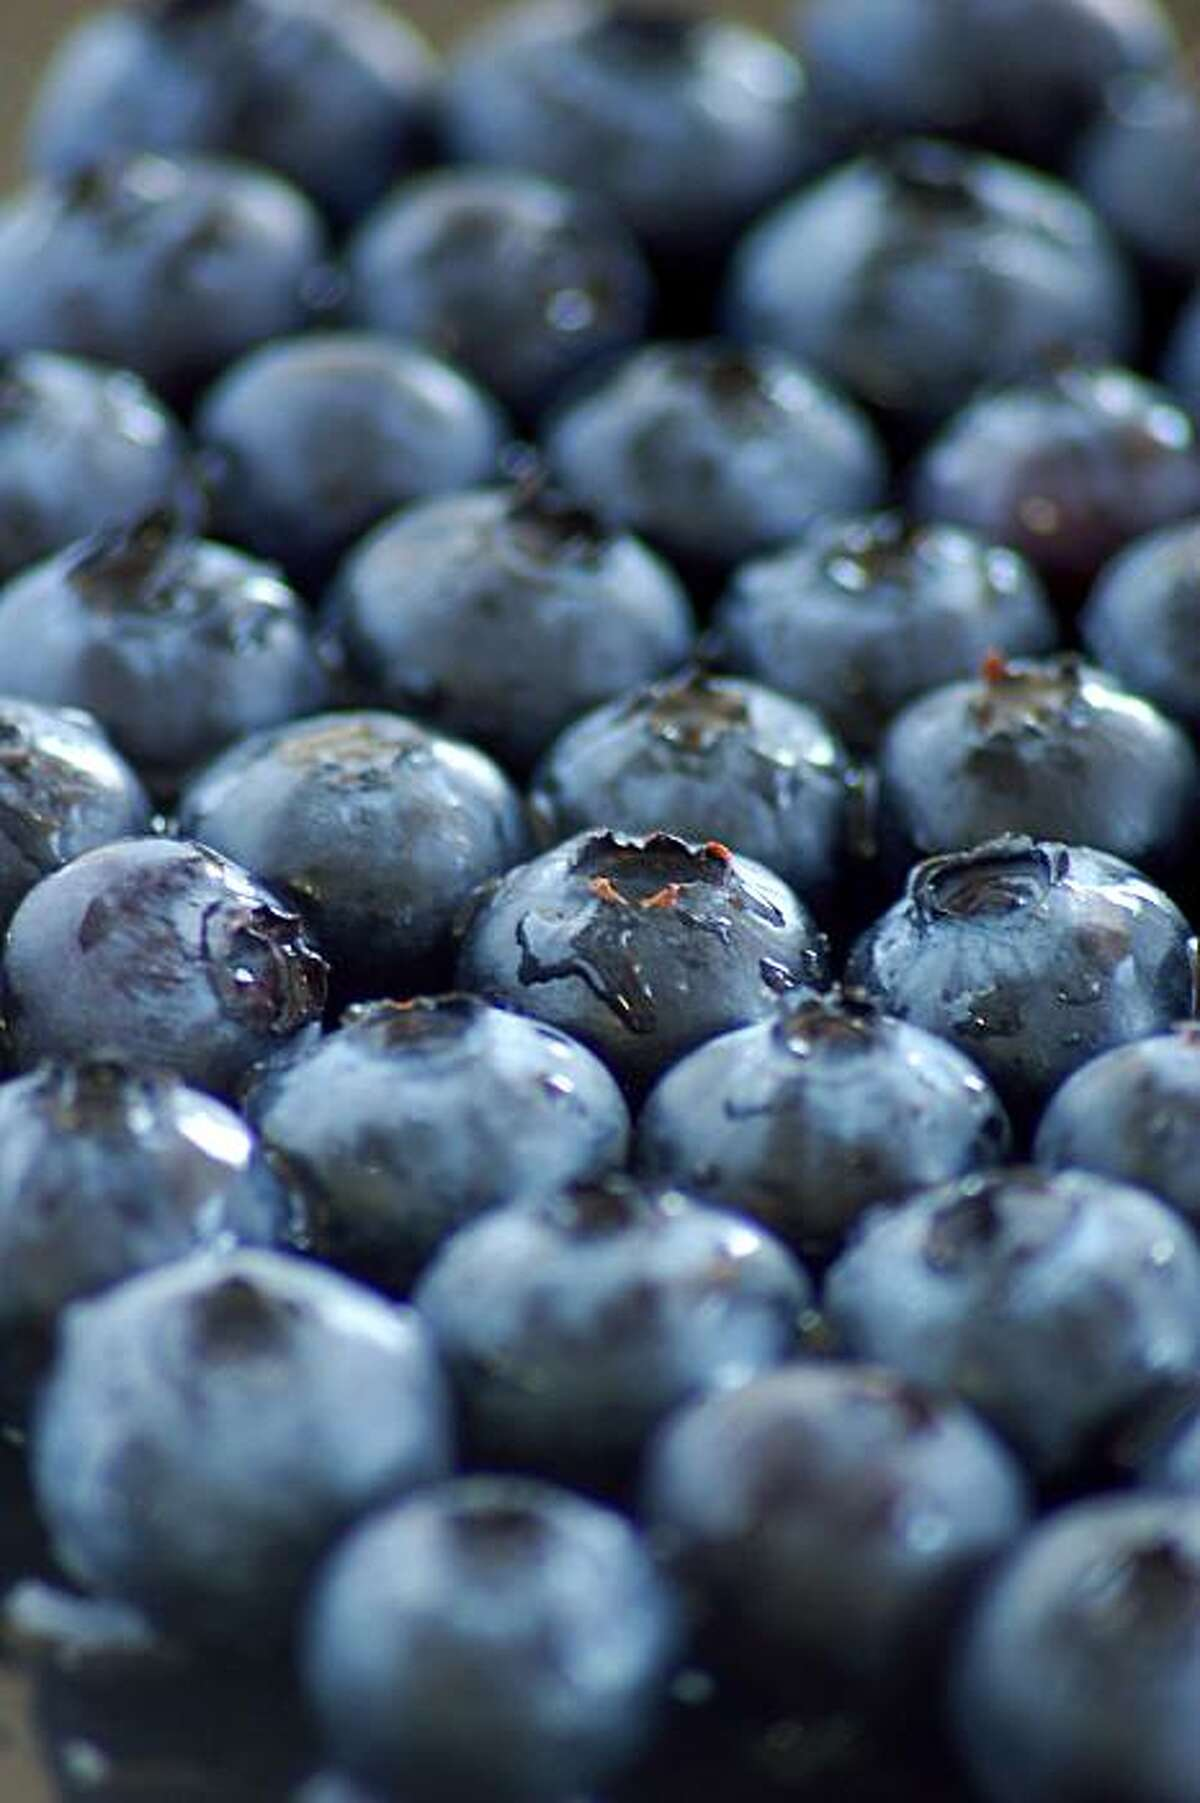 Blueberries are loaded with nutritious compounds, such as antioxidants, anthocyanins and vitamin C. Photo by Matthew T. Stallbaumer/Mother Earth News magazine